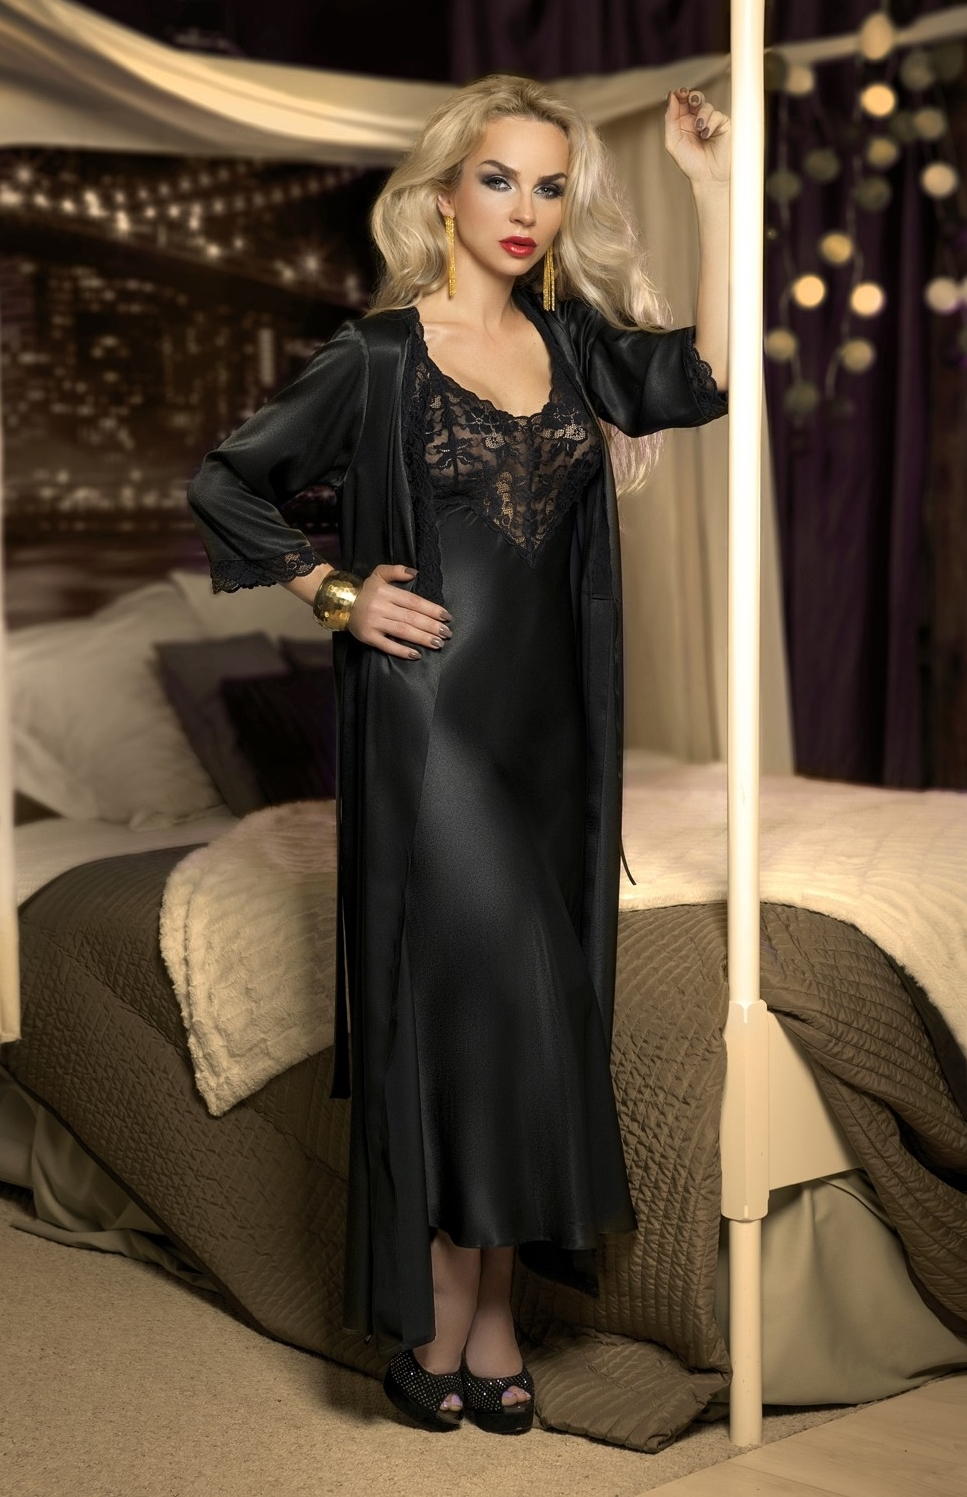 long black satin and lace nightgown vicky w00958 idresstocode online boutique of negligee and. Black Bedroom Furniture Sets. Home Design Ideas